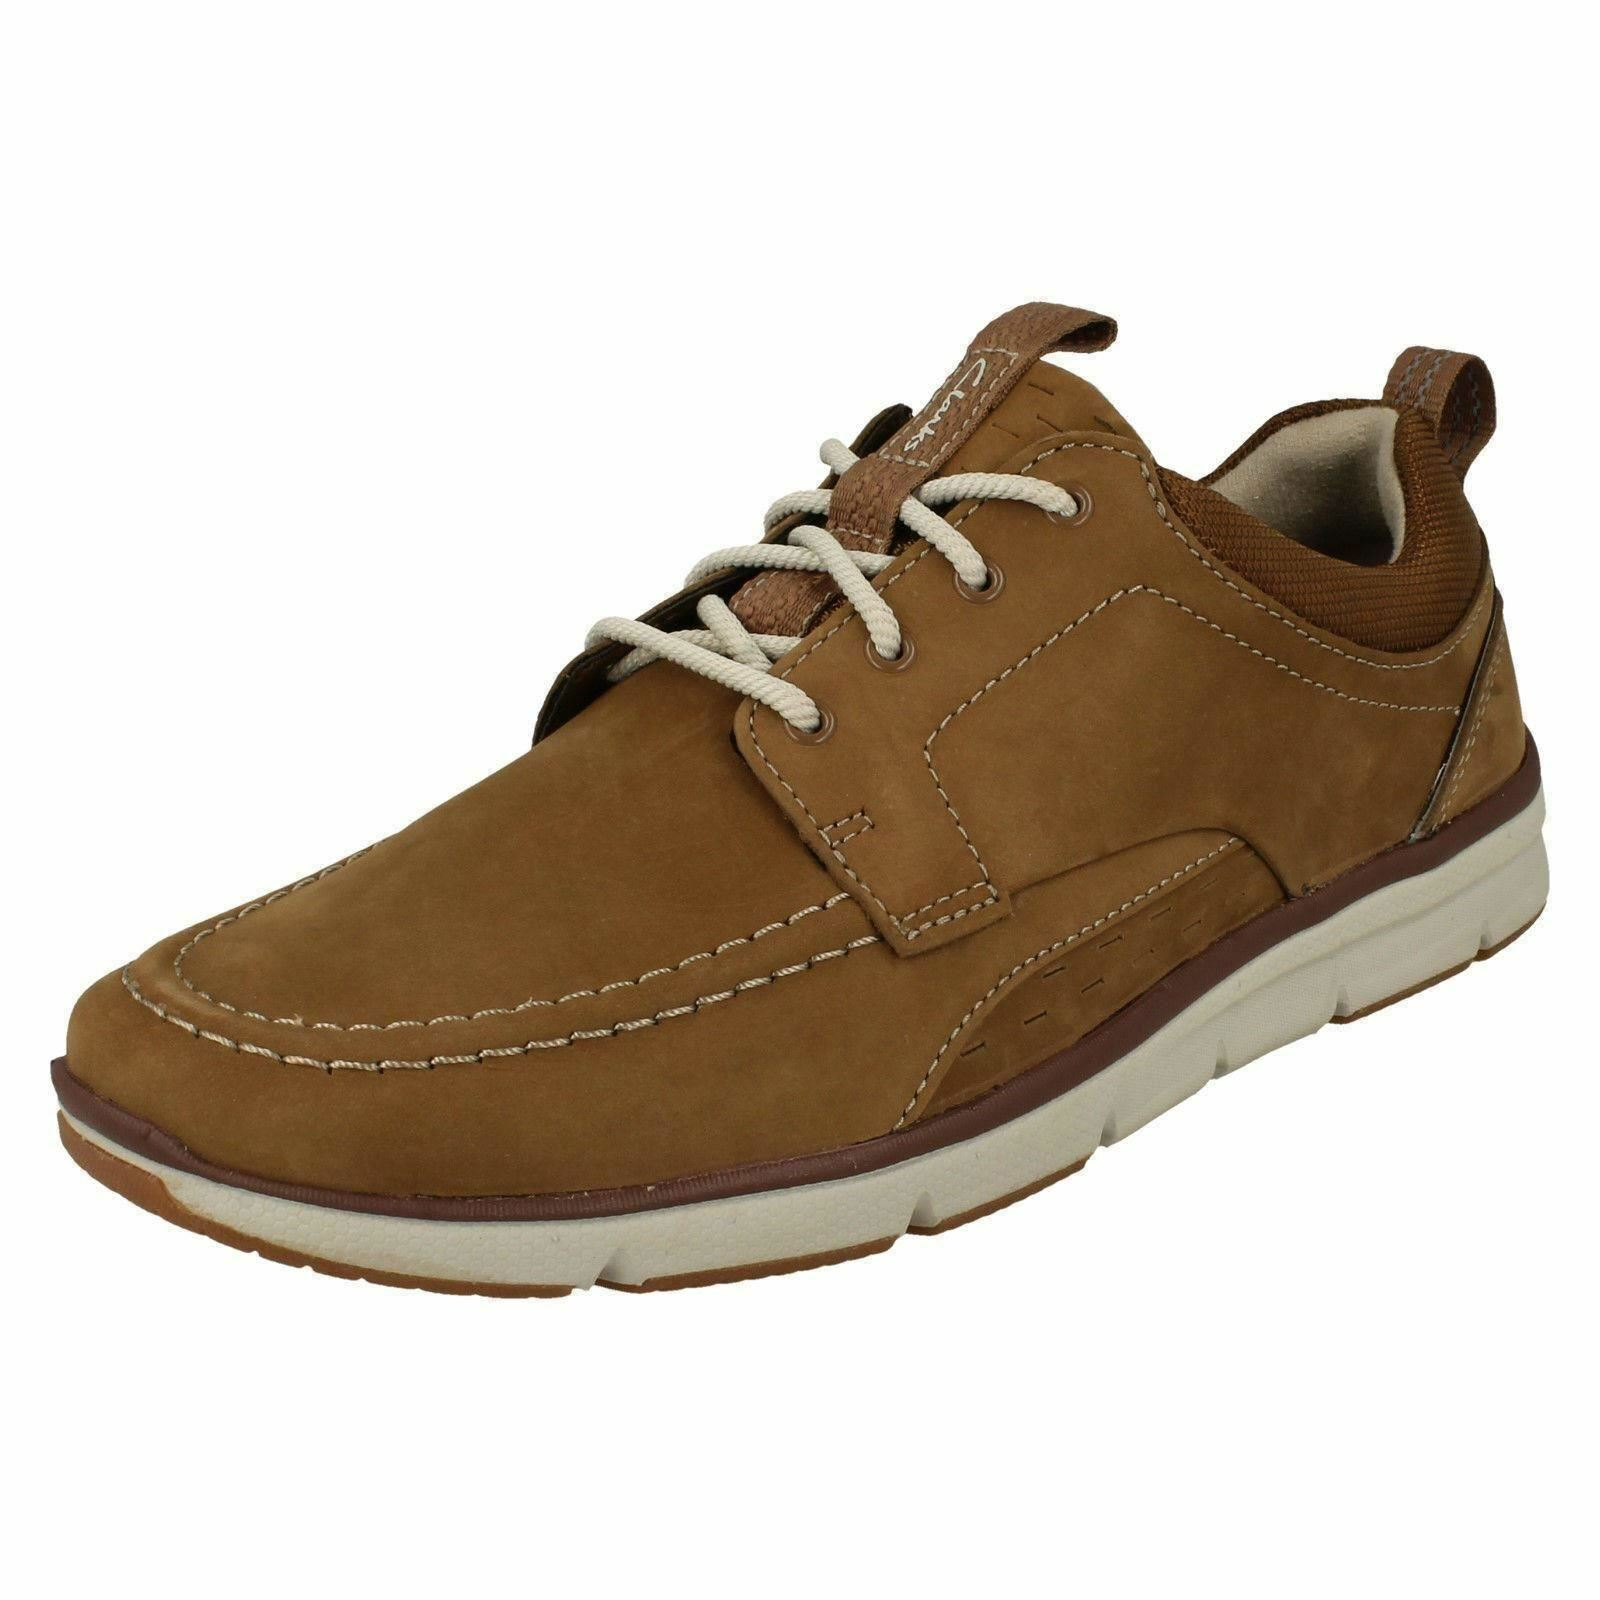 MENS CLARKS ORSON BAY UNSTRUCTURED CASUAL LACE UP EVERYDAY SHOES COMFORT SIZE